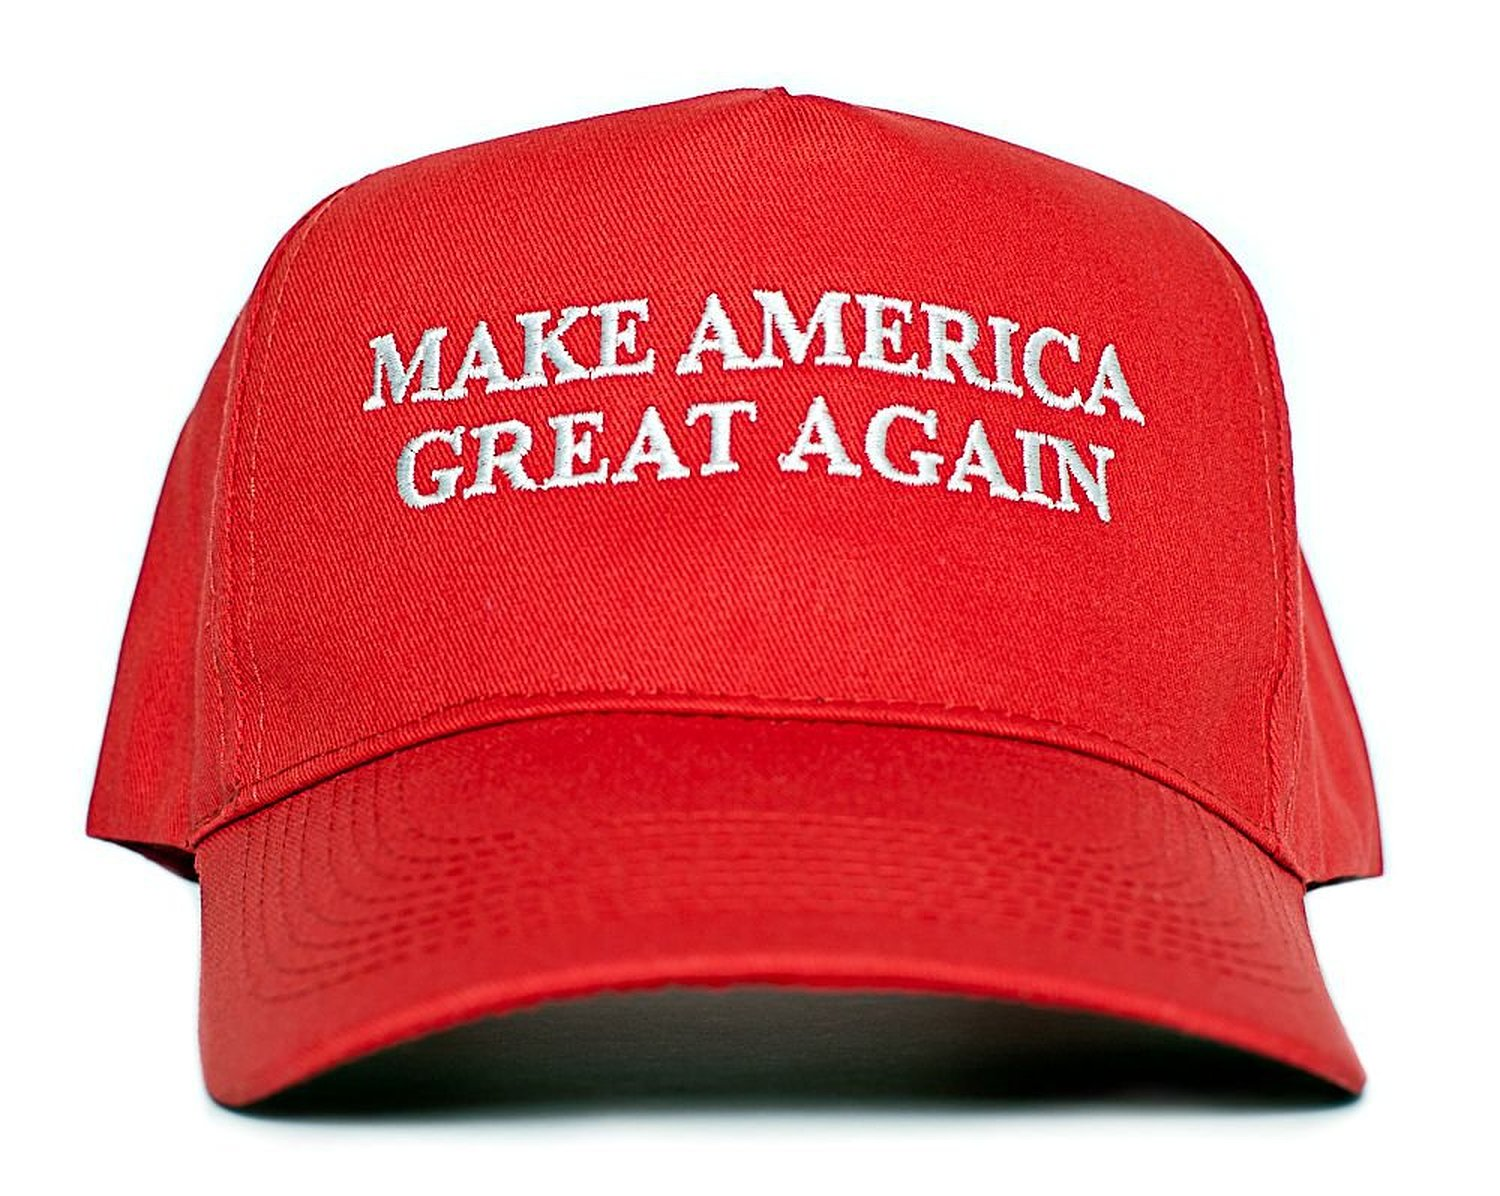 Make America Great Again, Donald Trump cap